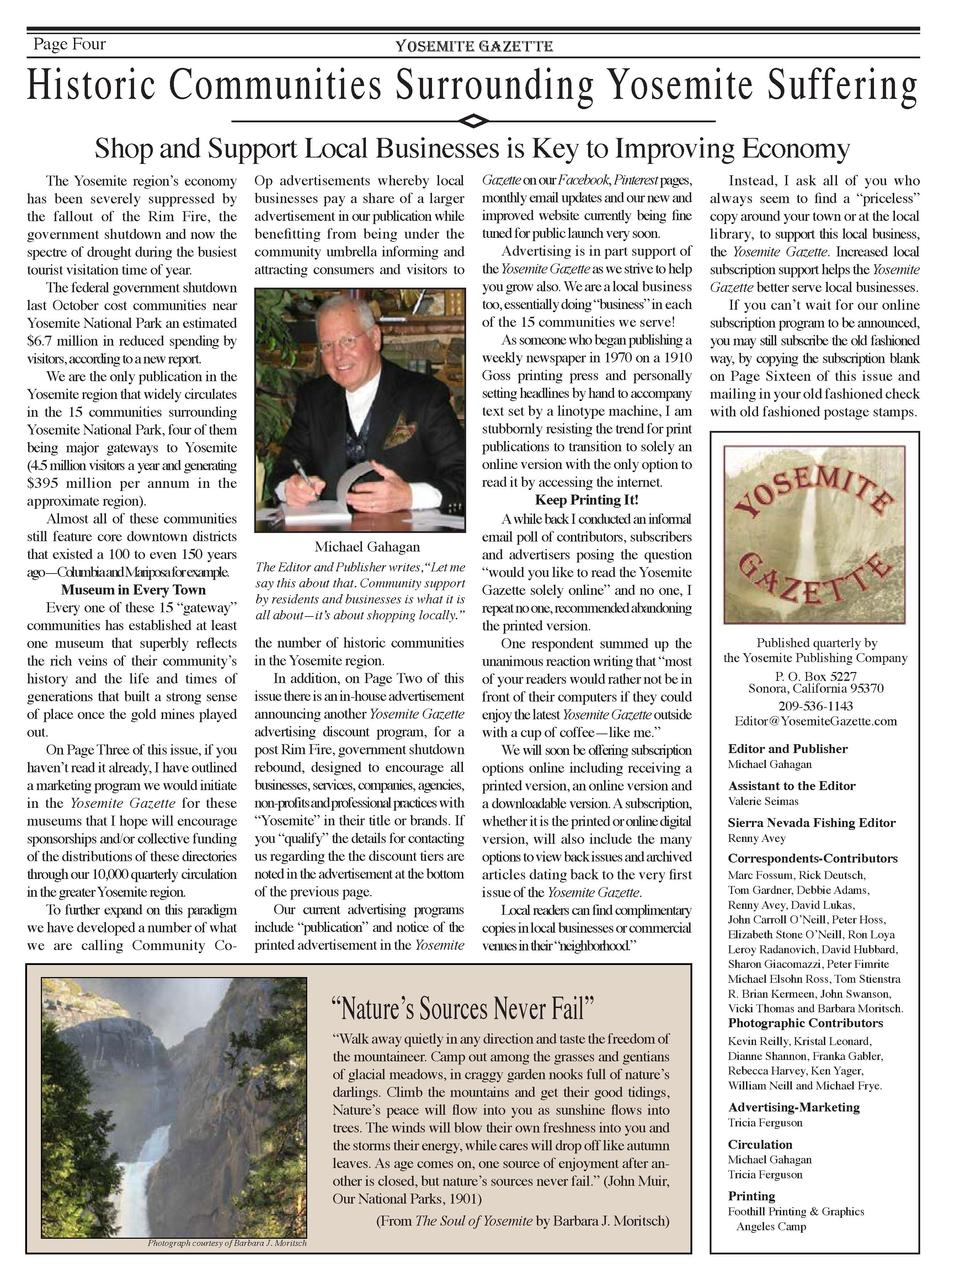 Page Four  YOSEMITE GAZETTE  Historic Communities Surrounding Yosemite Suffering Shop and Support Local Businesses is Key ...